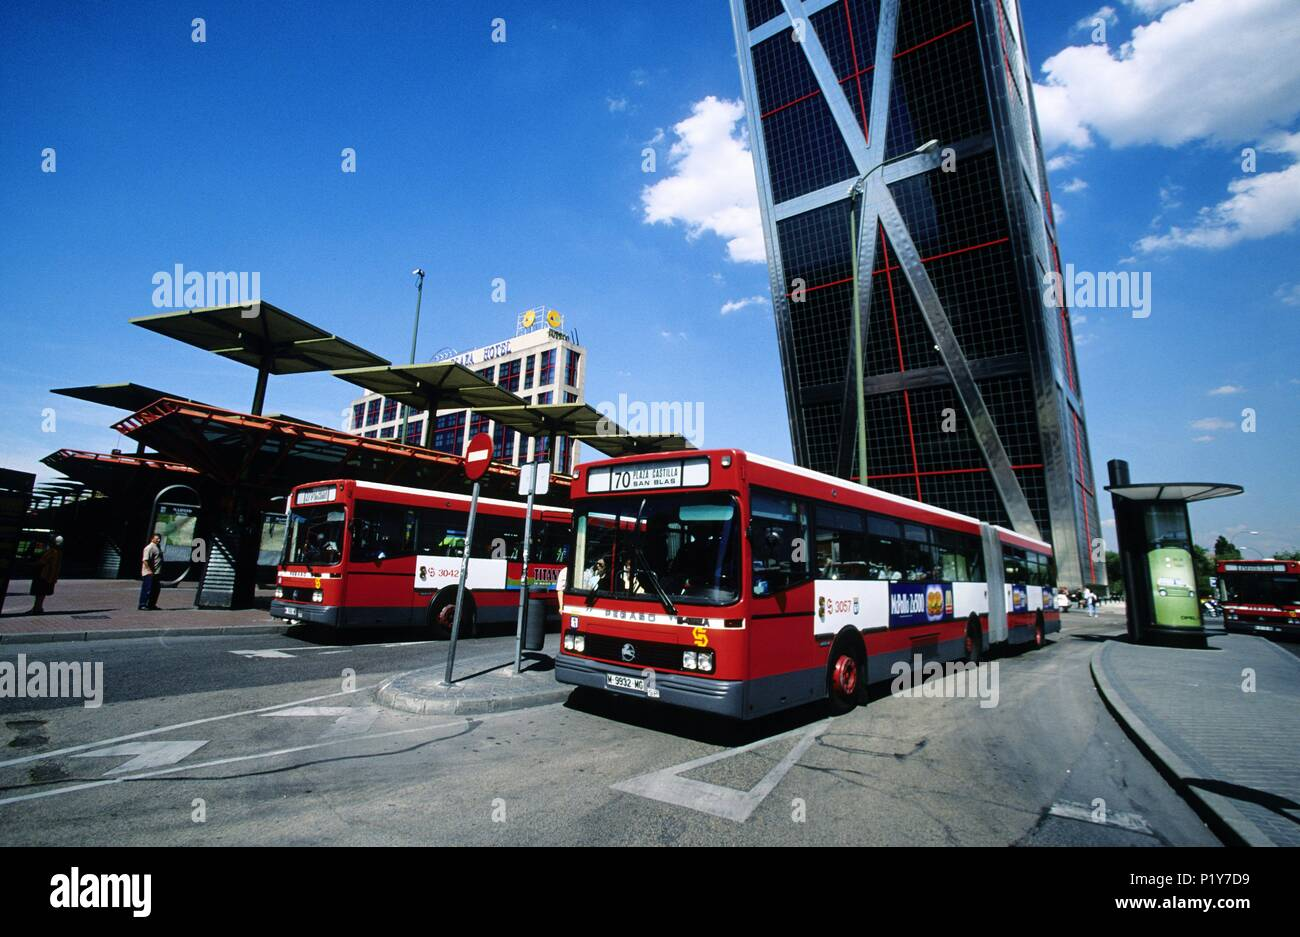 Plaza de castilla bus station